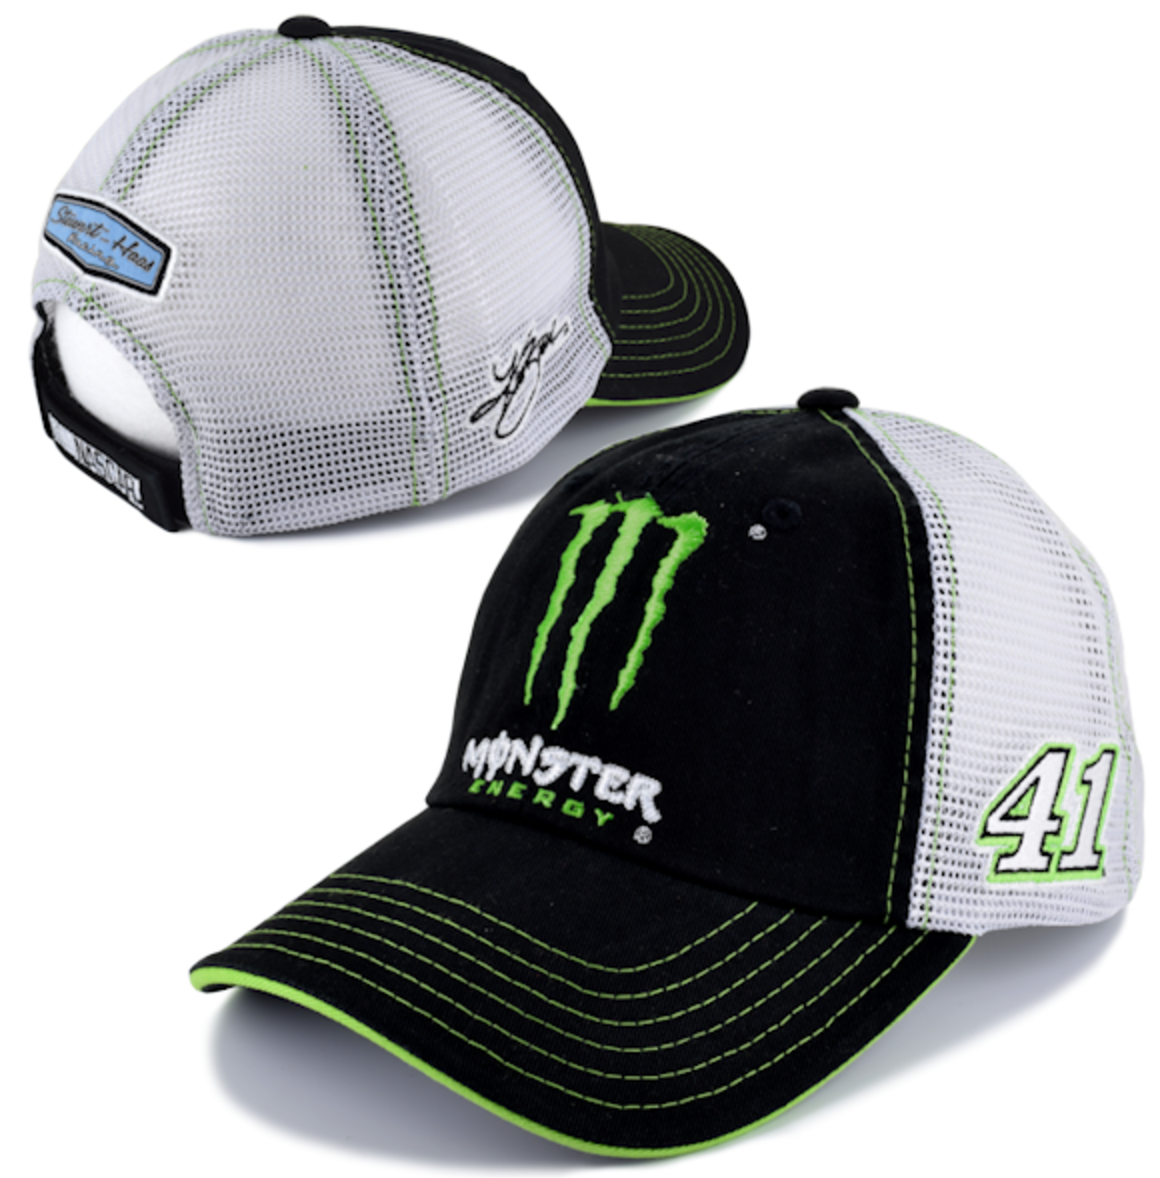 NO 41 KURT BUSCH MONSTER ENERGY CAP - Shop Motorsport 5f25d55397e